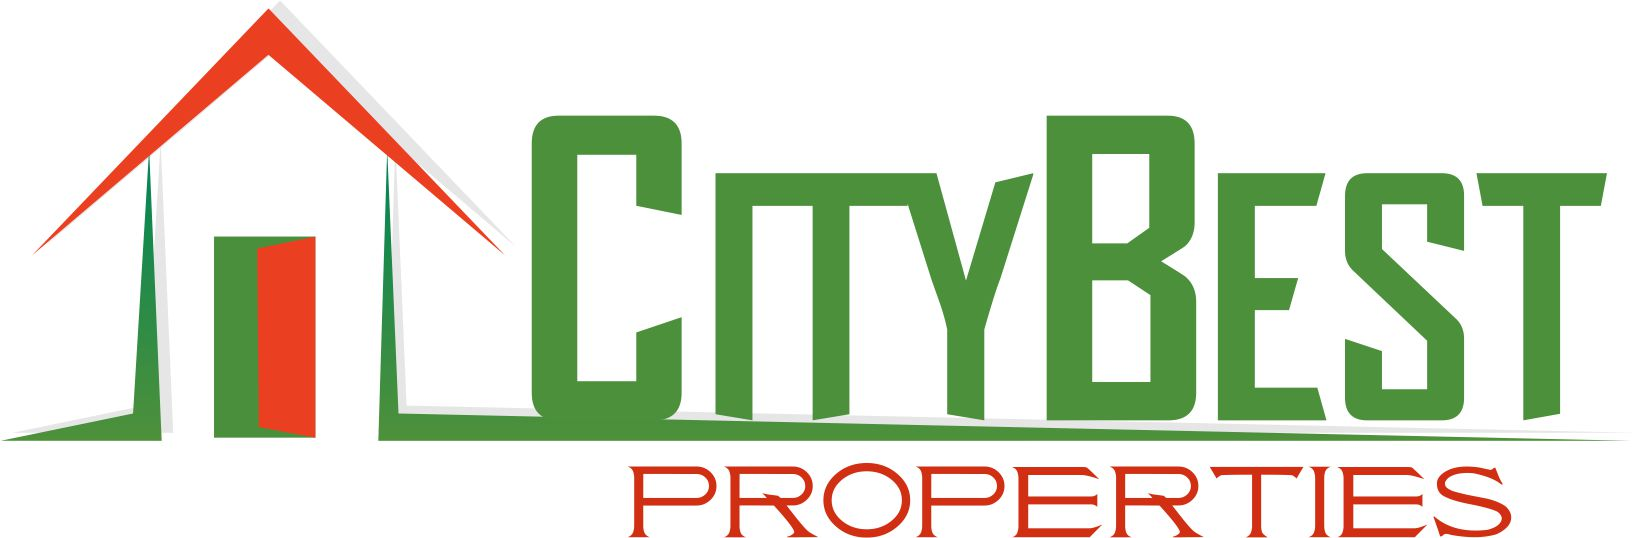 City Best Properties - logo